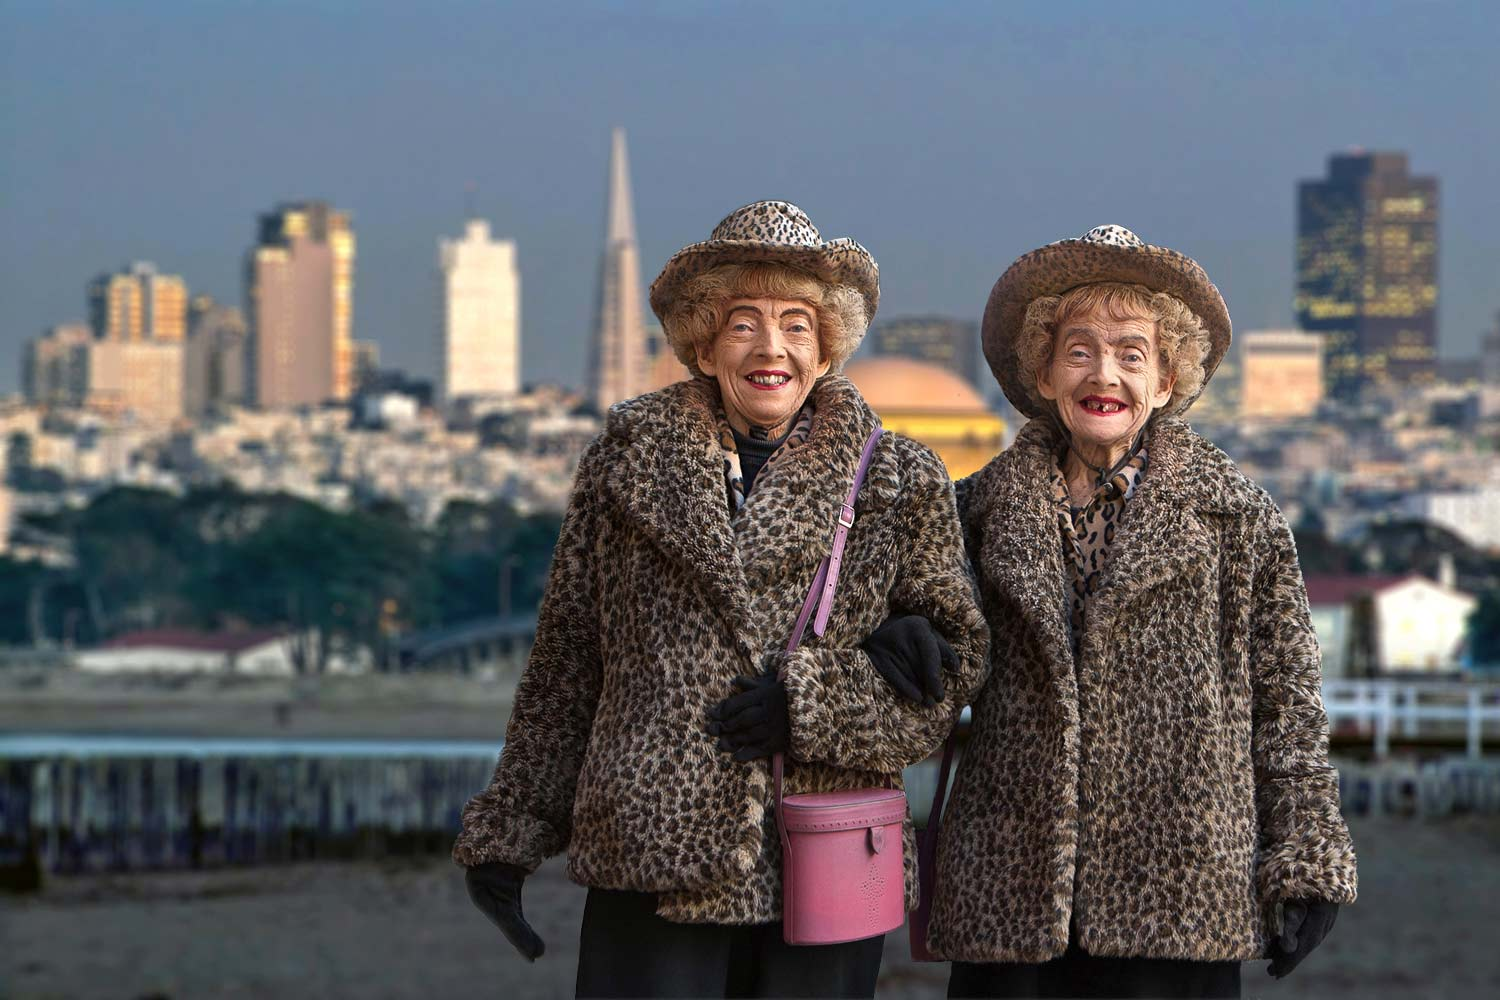 San-francisco-portrait-Twins